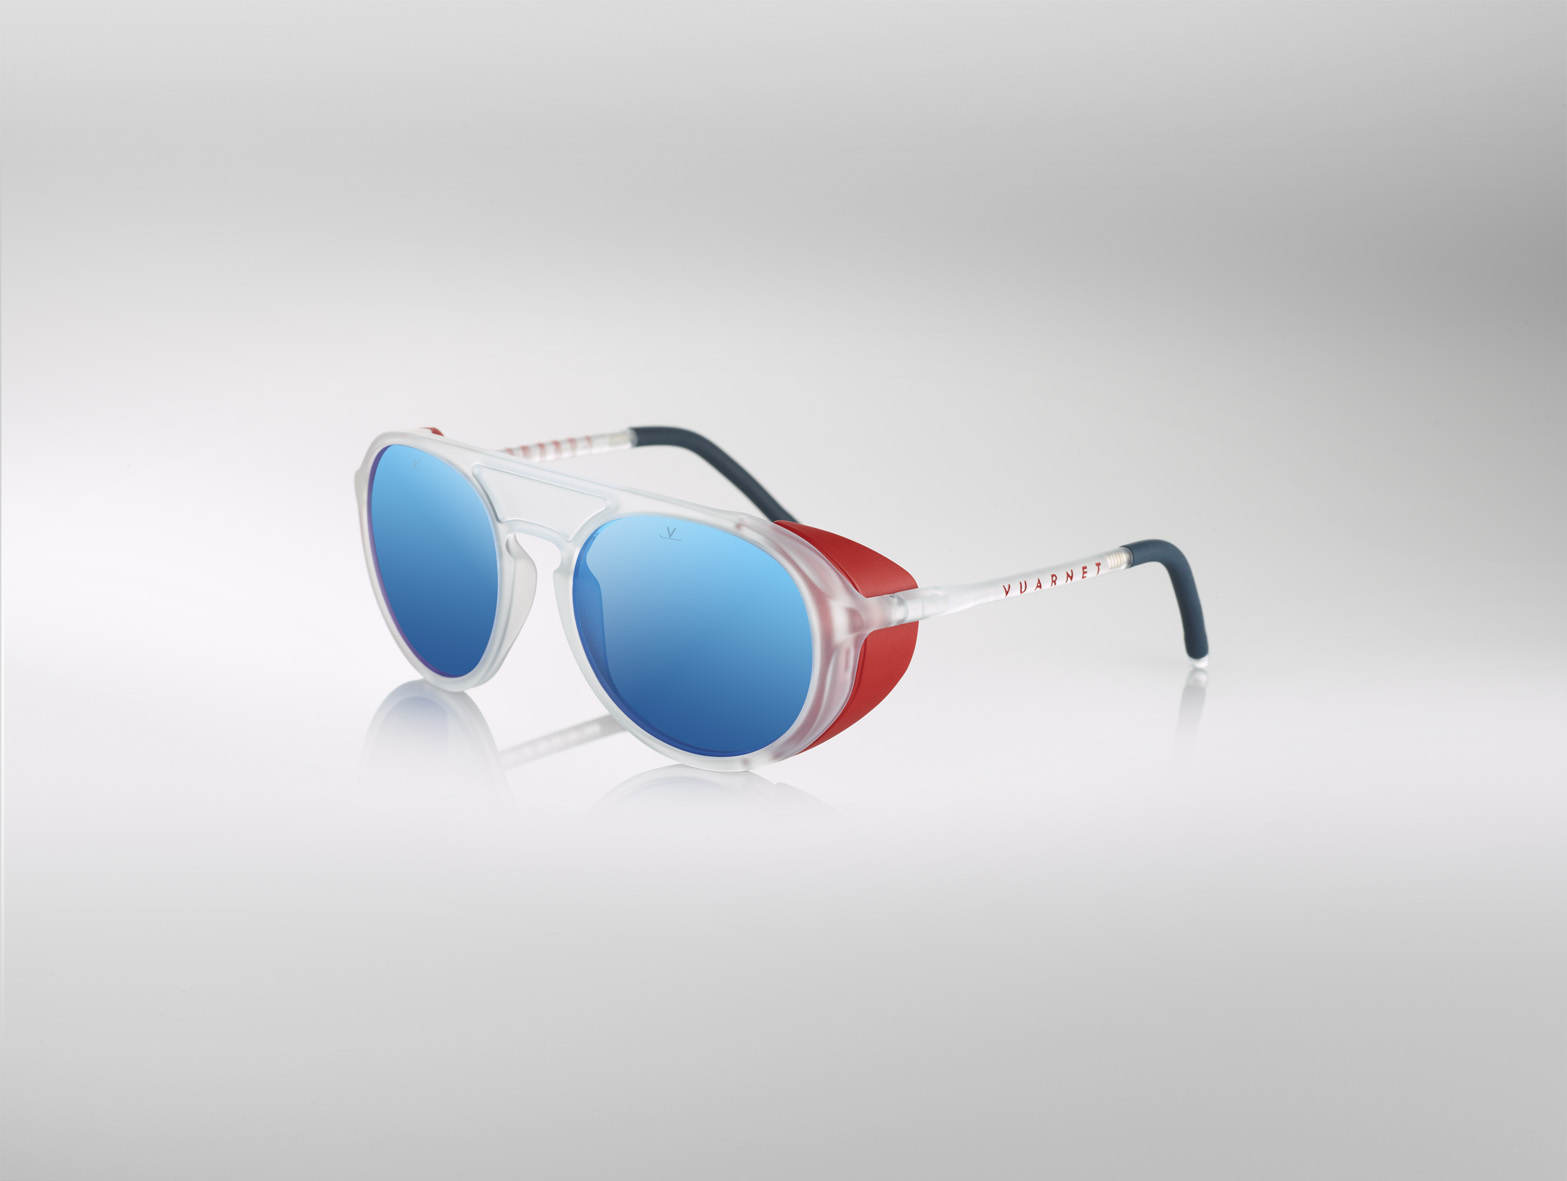 a791dcbcec3 Vuarnet s Ice Sunglasses Upgrade James Bond s Favorite Shades ...